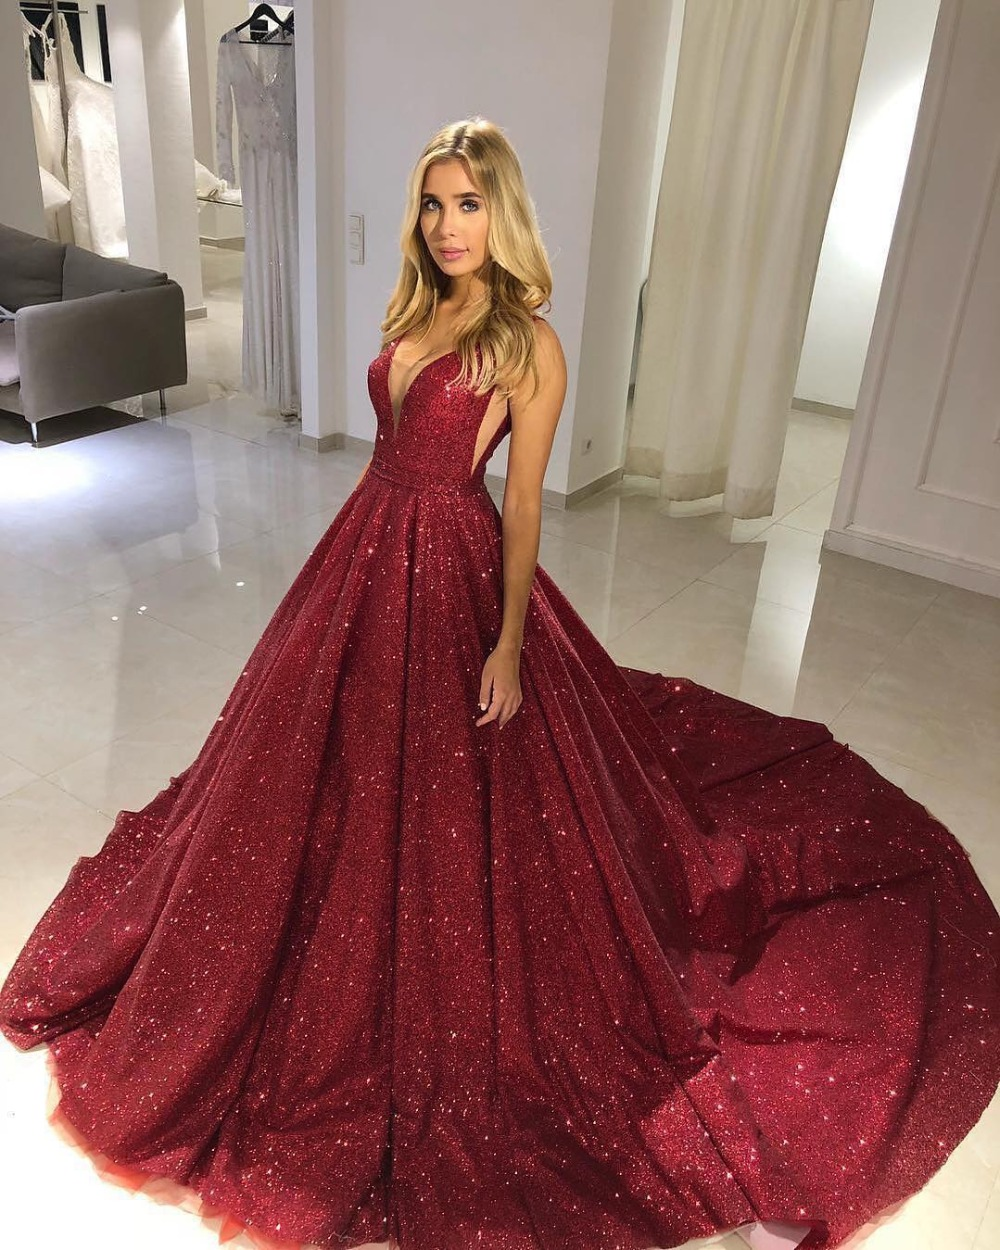 Red Ball Gown Dresses: Glitter Wine Red Sequin Prom Dress Ball Gown Deep V Neck